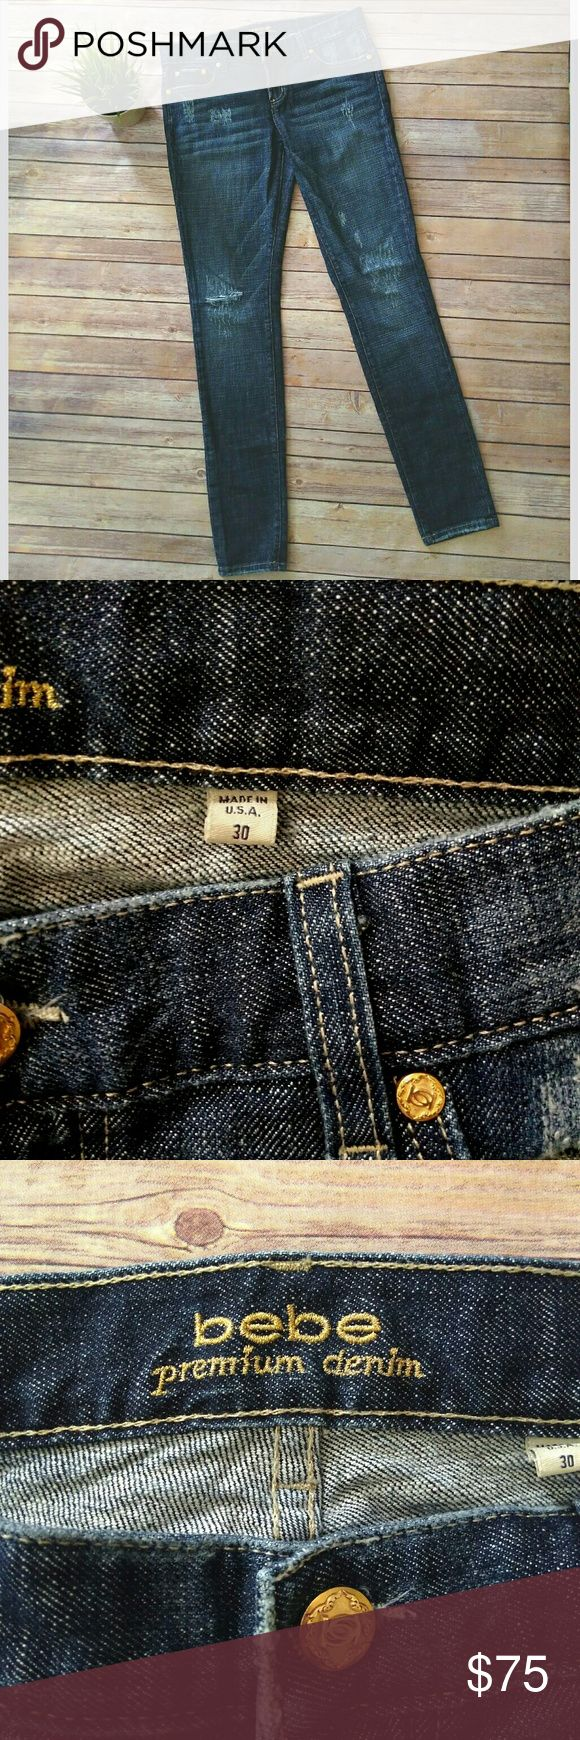 bebe rare Carmen stud  skinny distressed jeans bebe Premium Denim jeans in a dark wash with a distressed look.  The style name is Carmen Double B Stud Skinny.  This is a rare style, hard to find.  It has pink rhinestones on the back pockets (two missing from left pocket). It has gold hardware.  Pet free smoke free home.   Rise: 8.5 inches Inseam: 33 inches Waist: 18 inches laying flat bebe Jeans Skinny